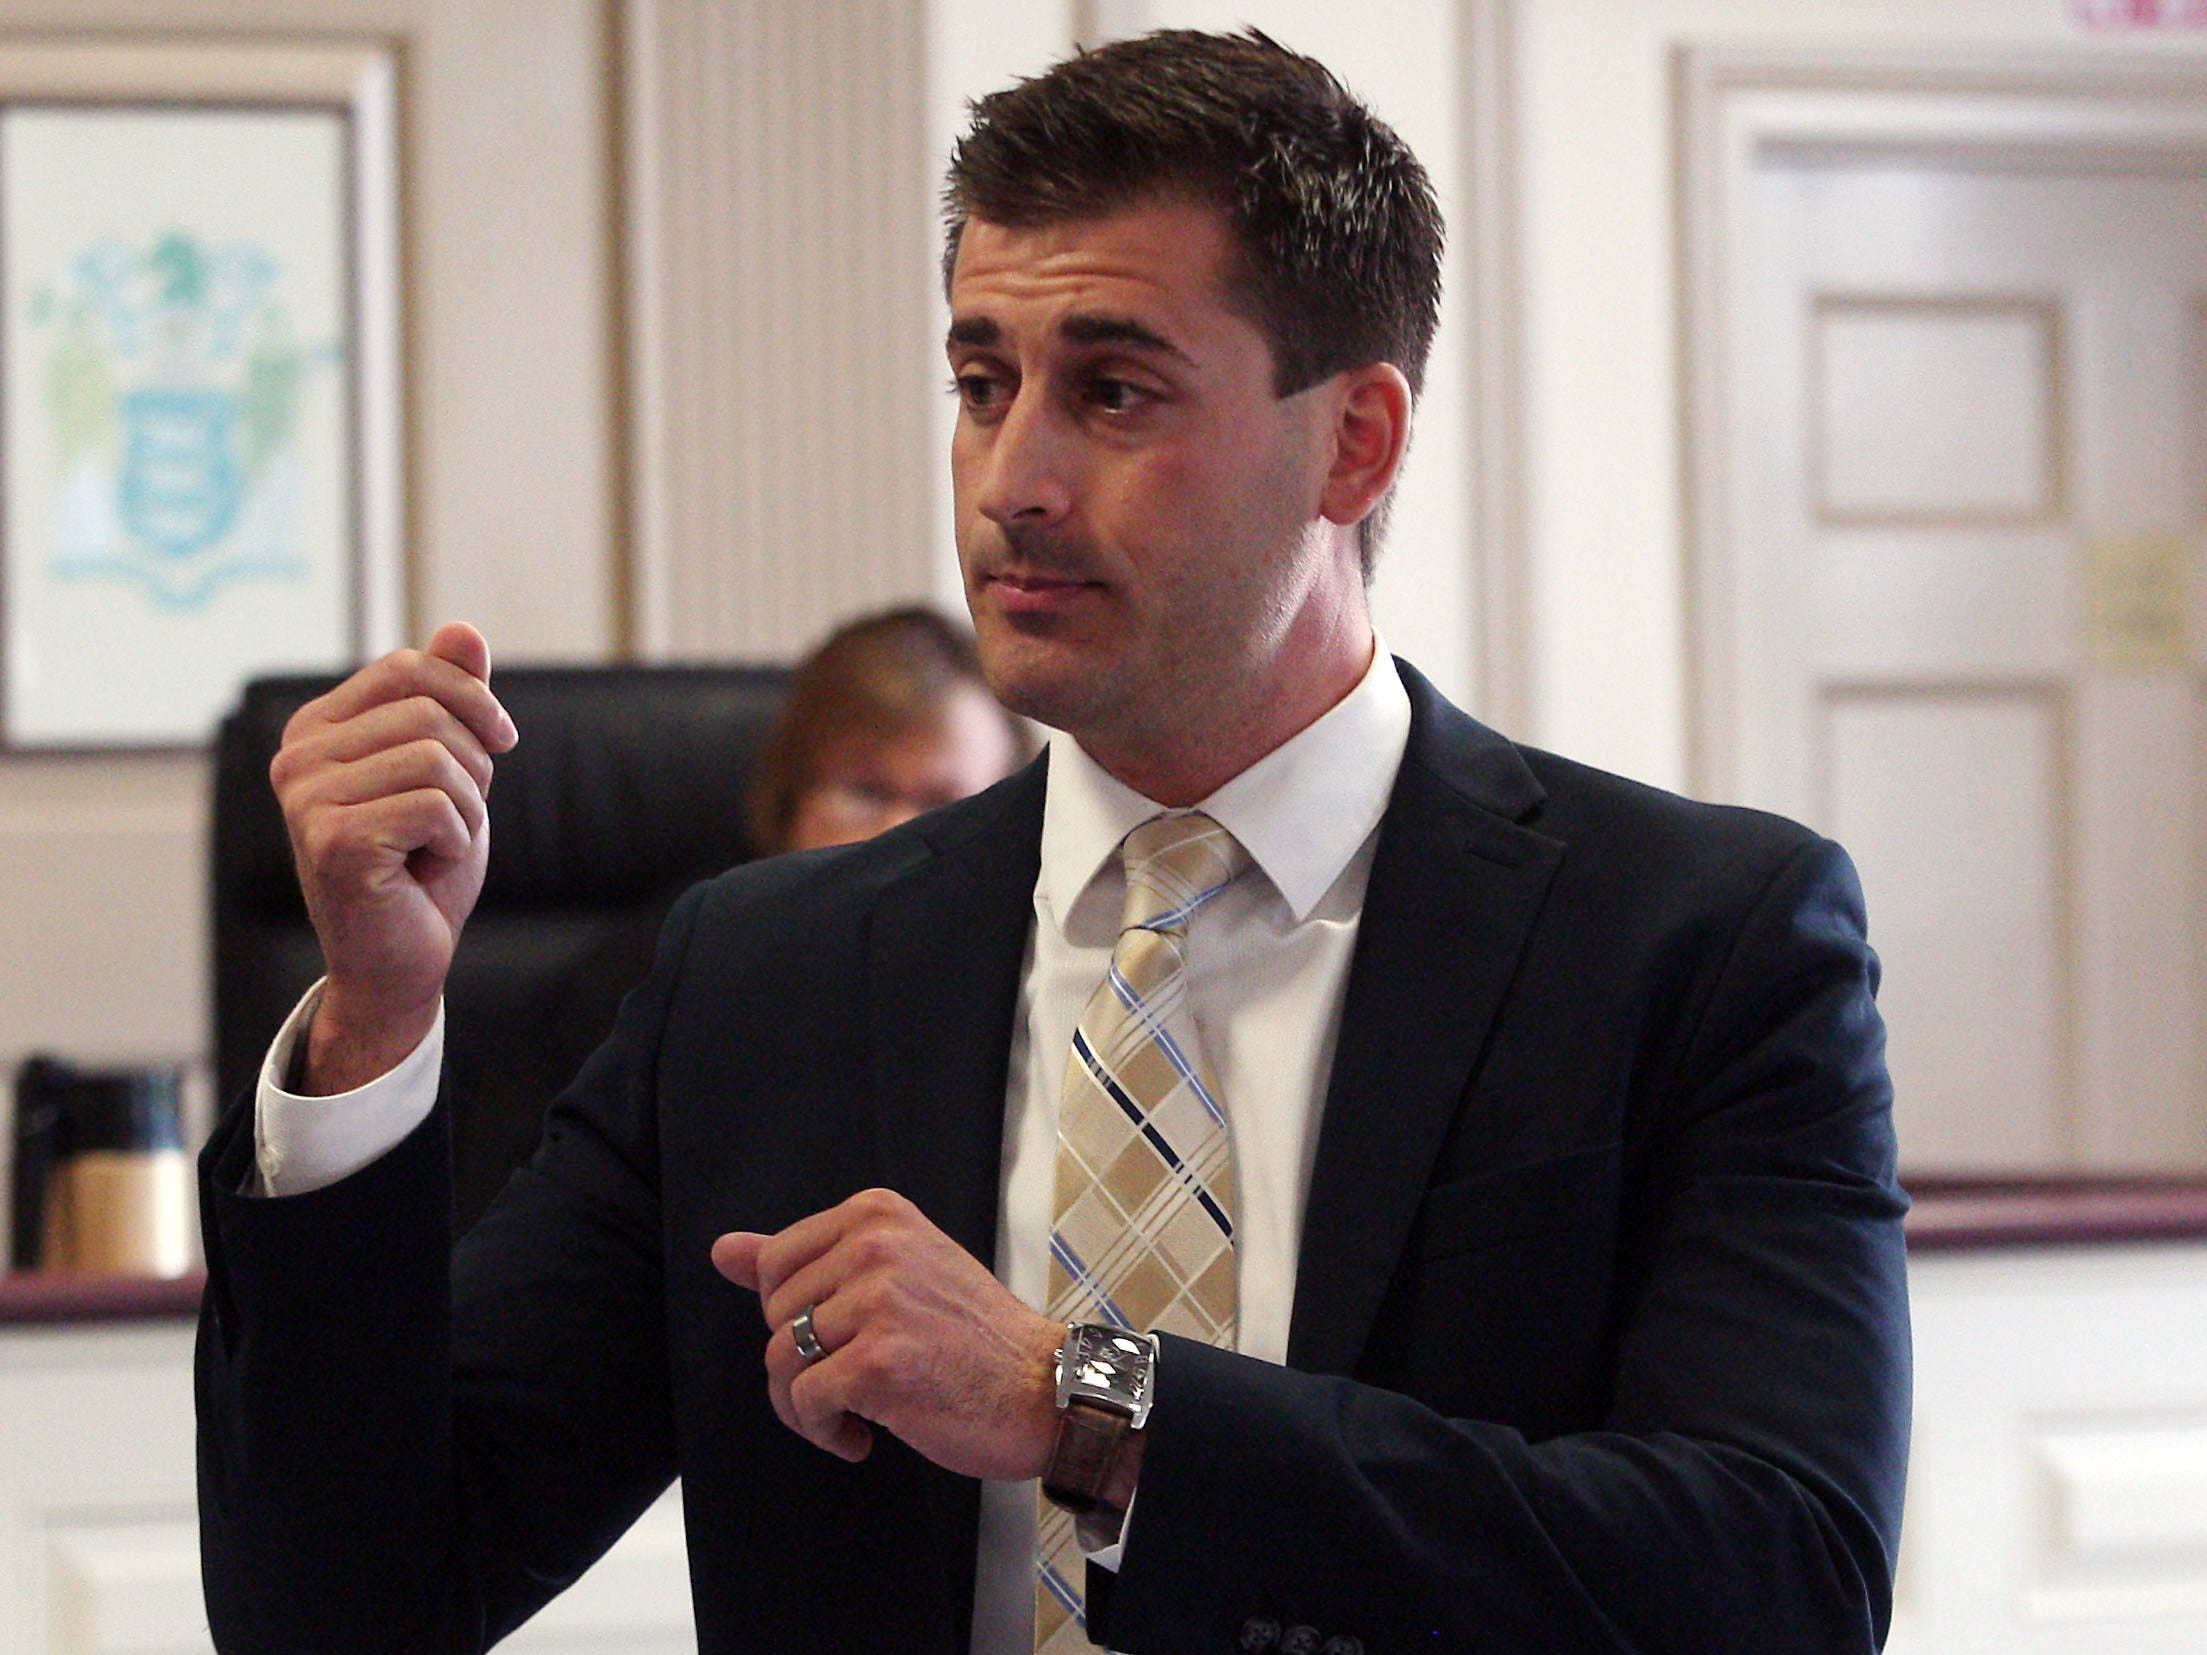 Morris County Assistant Prosecutor Matthew Troiano describes the attack during his opening in Morristown Superior Court on day one at the trial of Ramon Pacheco on charges of murdering Edwin Alexander Chavez during a fight at a Dover bar in 2011. July 17, 2014, Morristown, NJ. Photo by Bob Karp